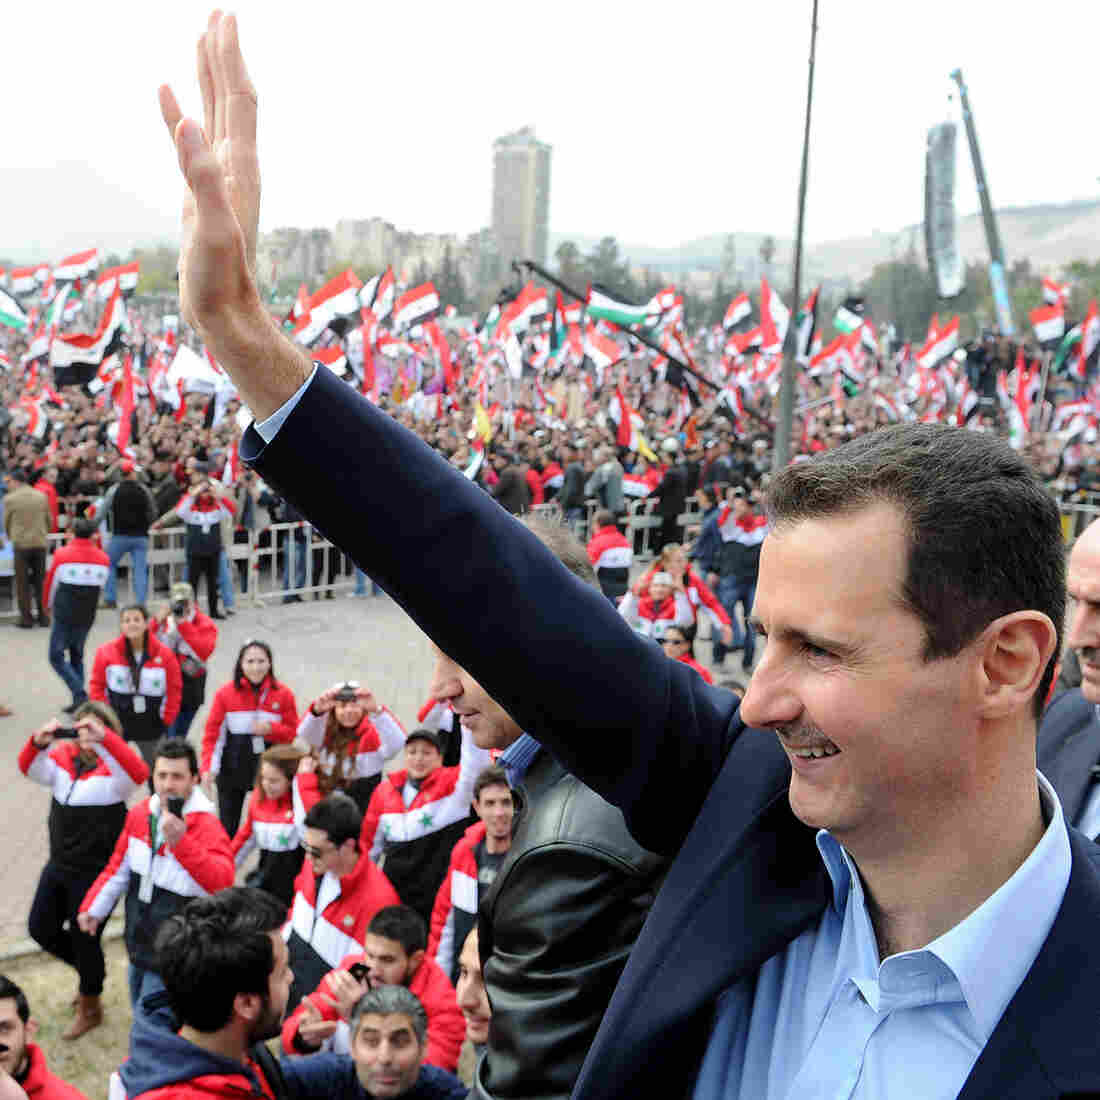 Syrian President Bashar Assad waves at supporters during a rare public appearance in Damascus on Jan. 11.